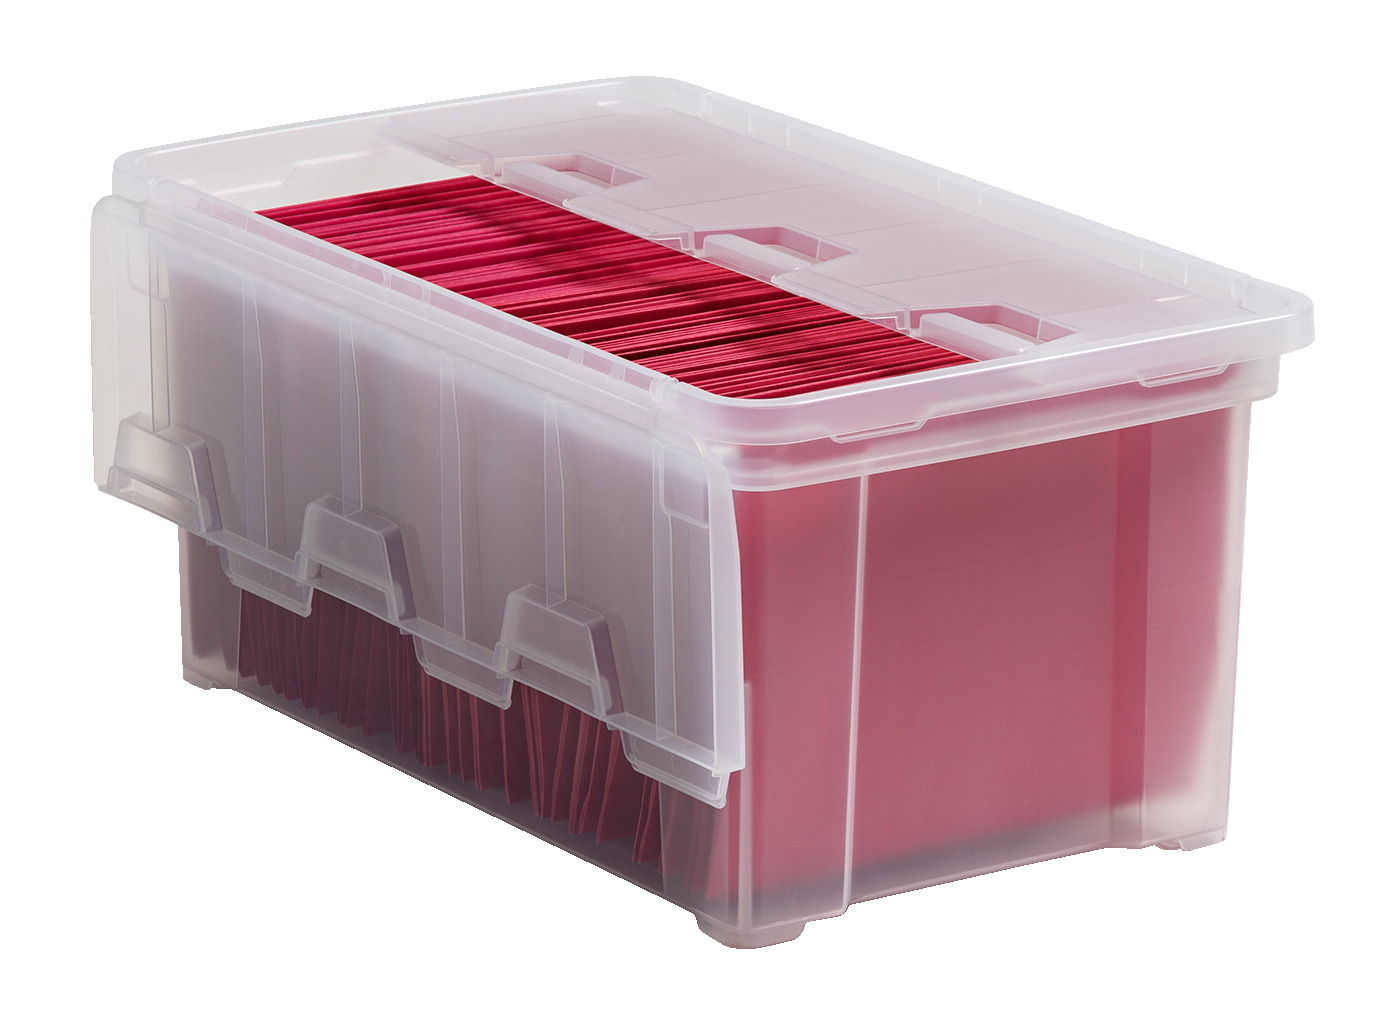 IRIS Letter Size Wing Lid File Box, 14-3/8 x 23-1/2 x 11 Inches, 49 Quarts,  Clear